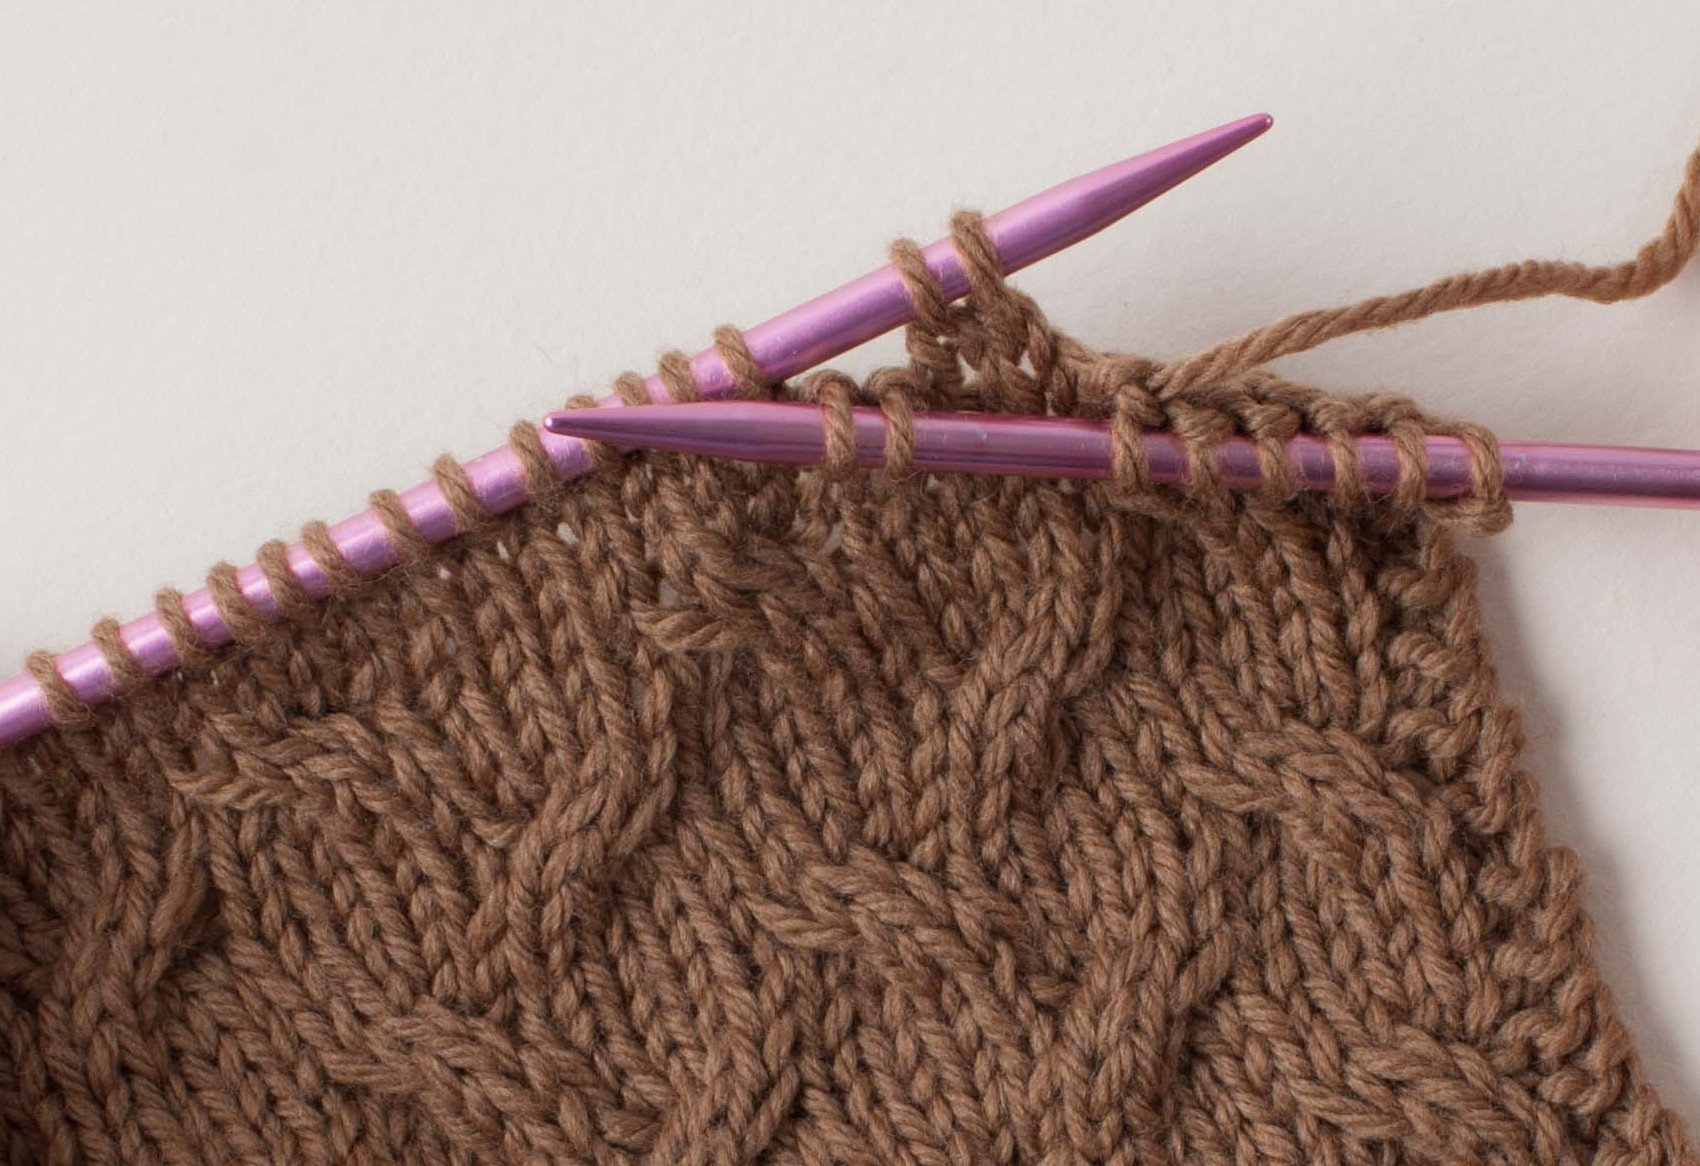 Knitting Cable Stitches Without Cable Needle : Knit Tech : Cable Knitting Without a Cable Needle - Ennea Collective - crafti...